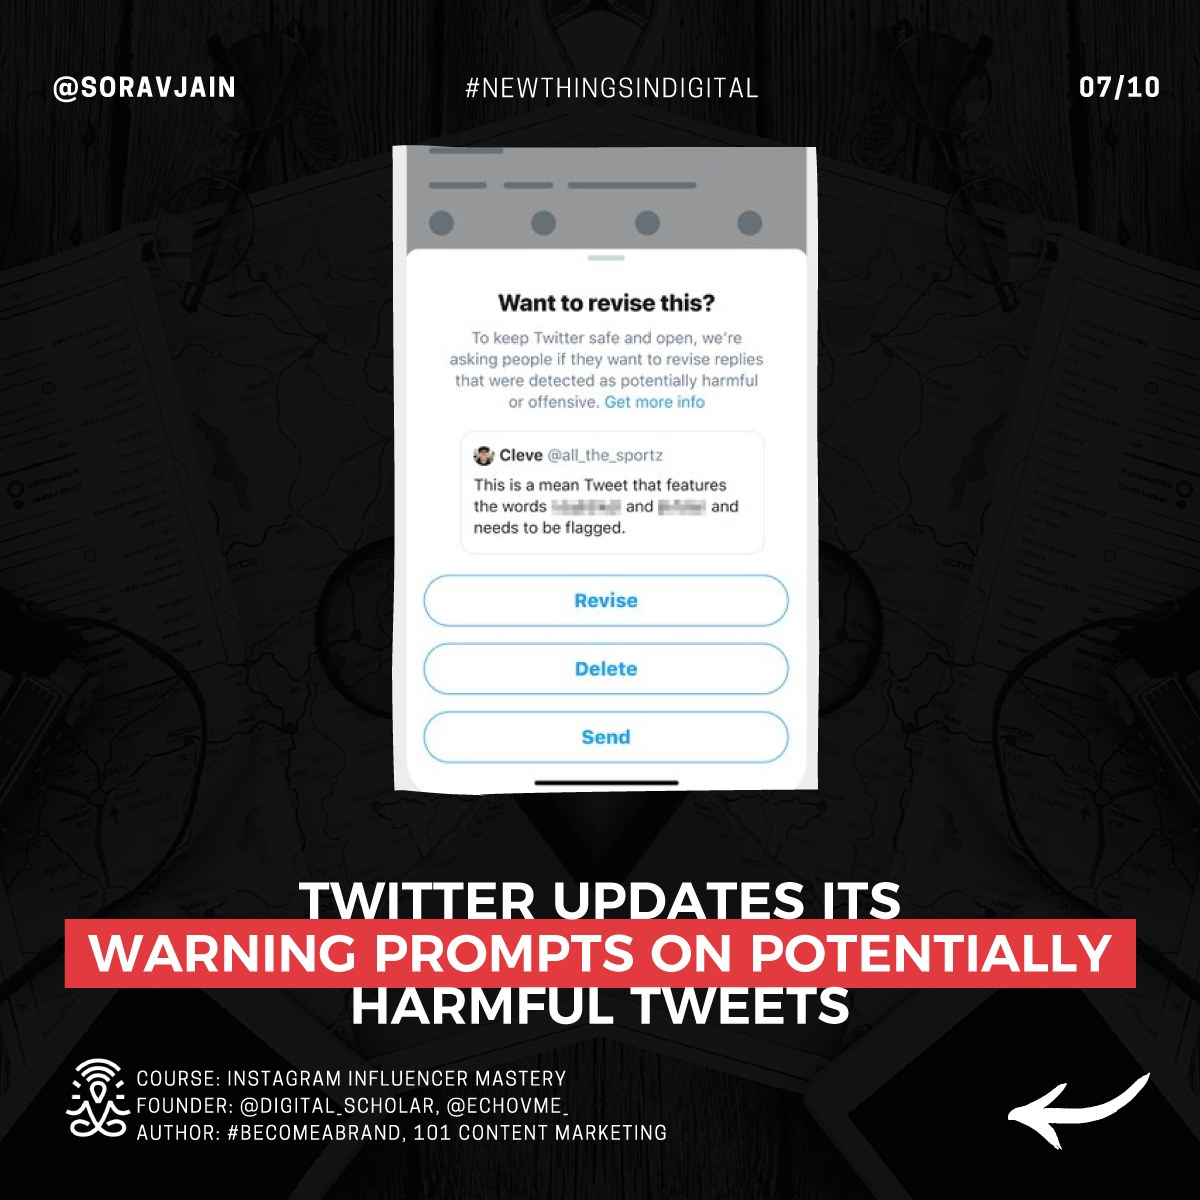 Twitter updates its warning prompts on potentially harmful Tweets